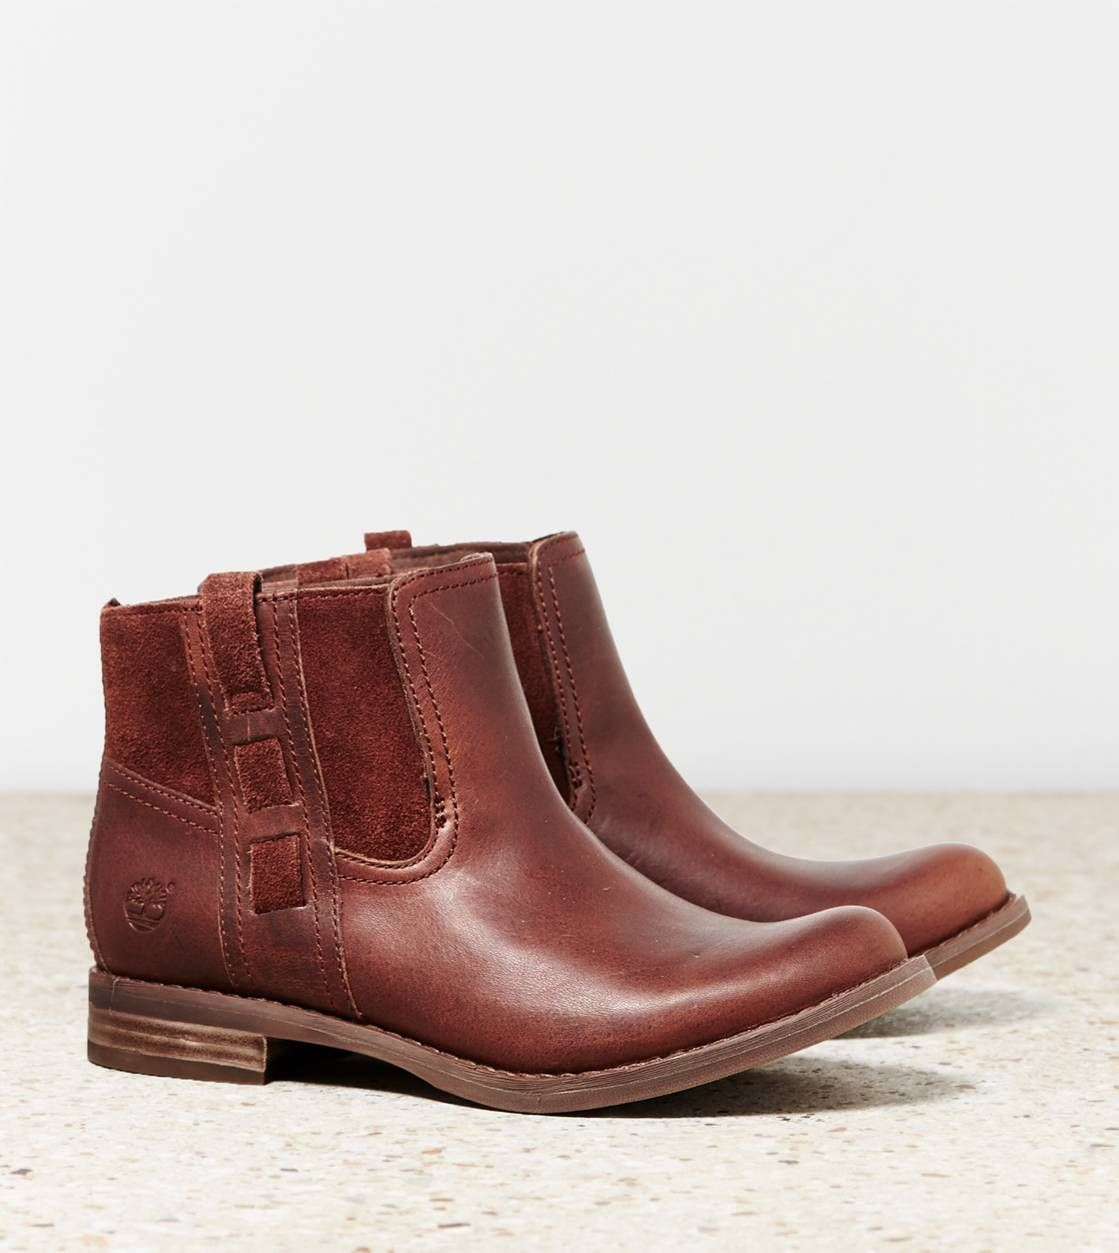 Timberland Earthkeepers Savin Hill Chelsea Timberland- Brown boots